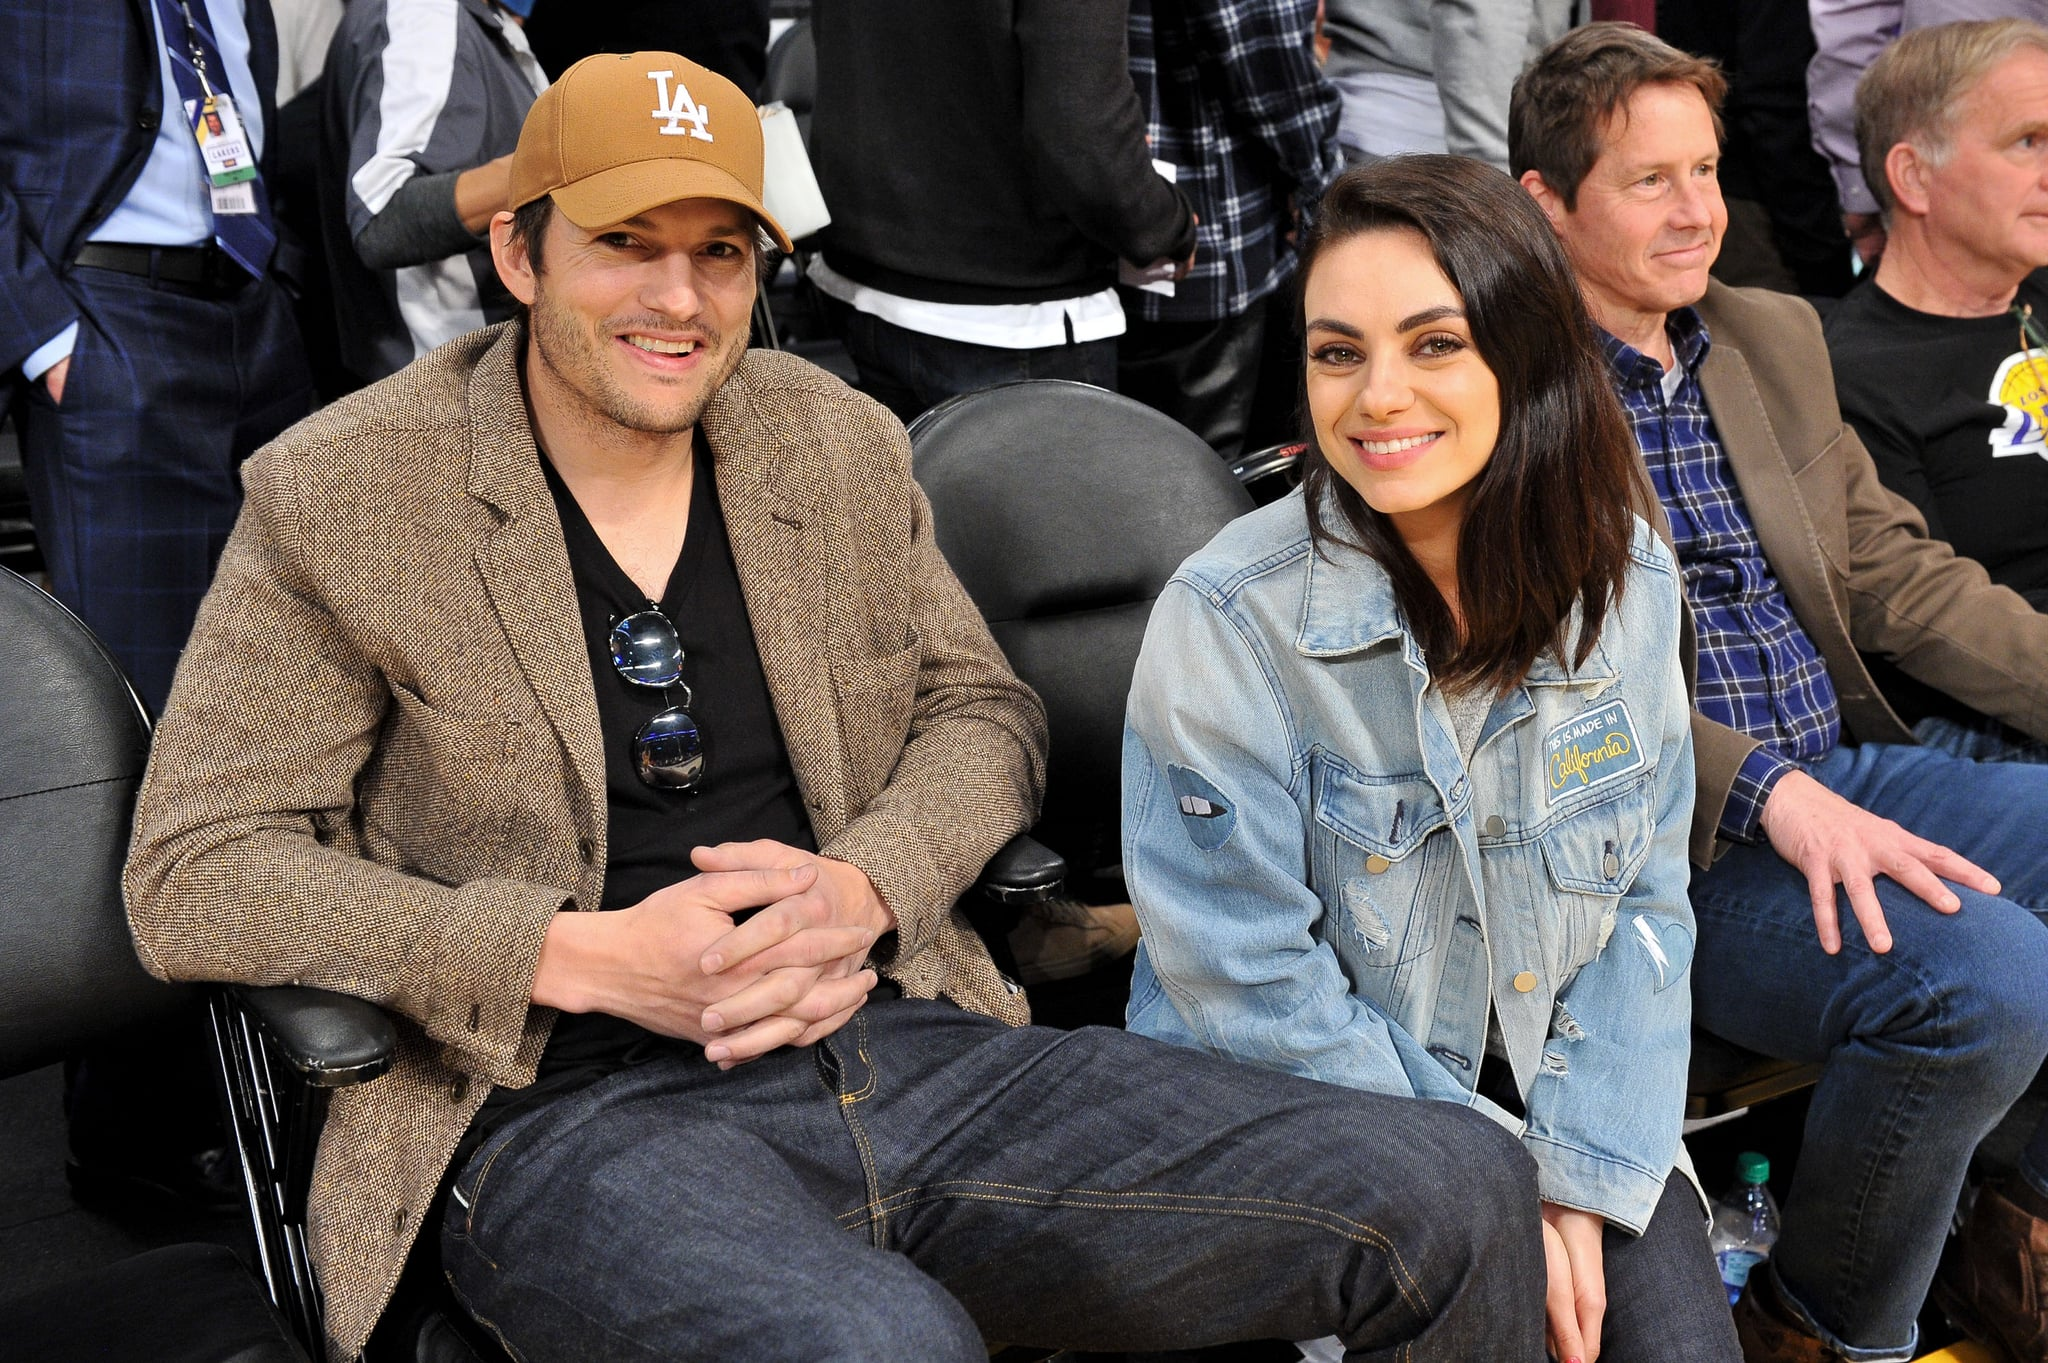 LOS ANGELES, CALIFORNIA - JANUARY 29: Ashton Kutcher and Mila Kunis attend a basketball game between the Los Angeles Lakers and the Philadelphia 76ers at Staples Centre on January 29, 2019 in Los Angeles, California. (Photo by Allen Berezovsky/Getty Images)